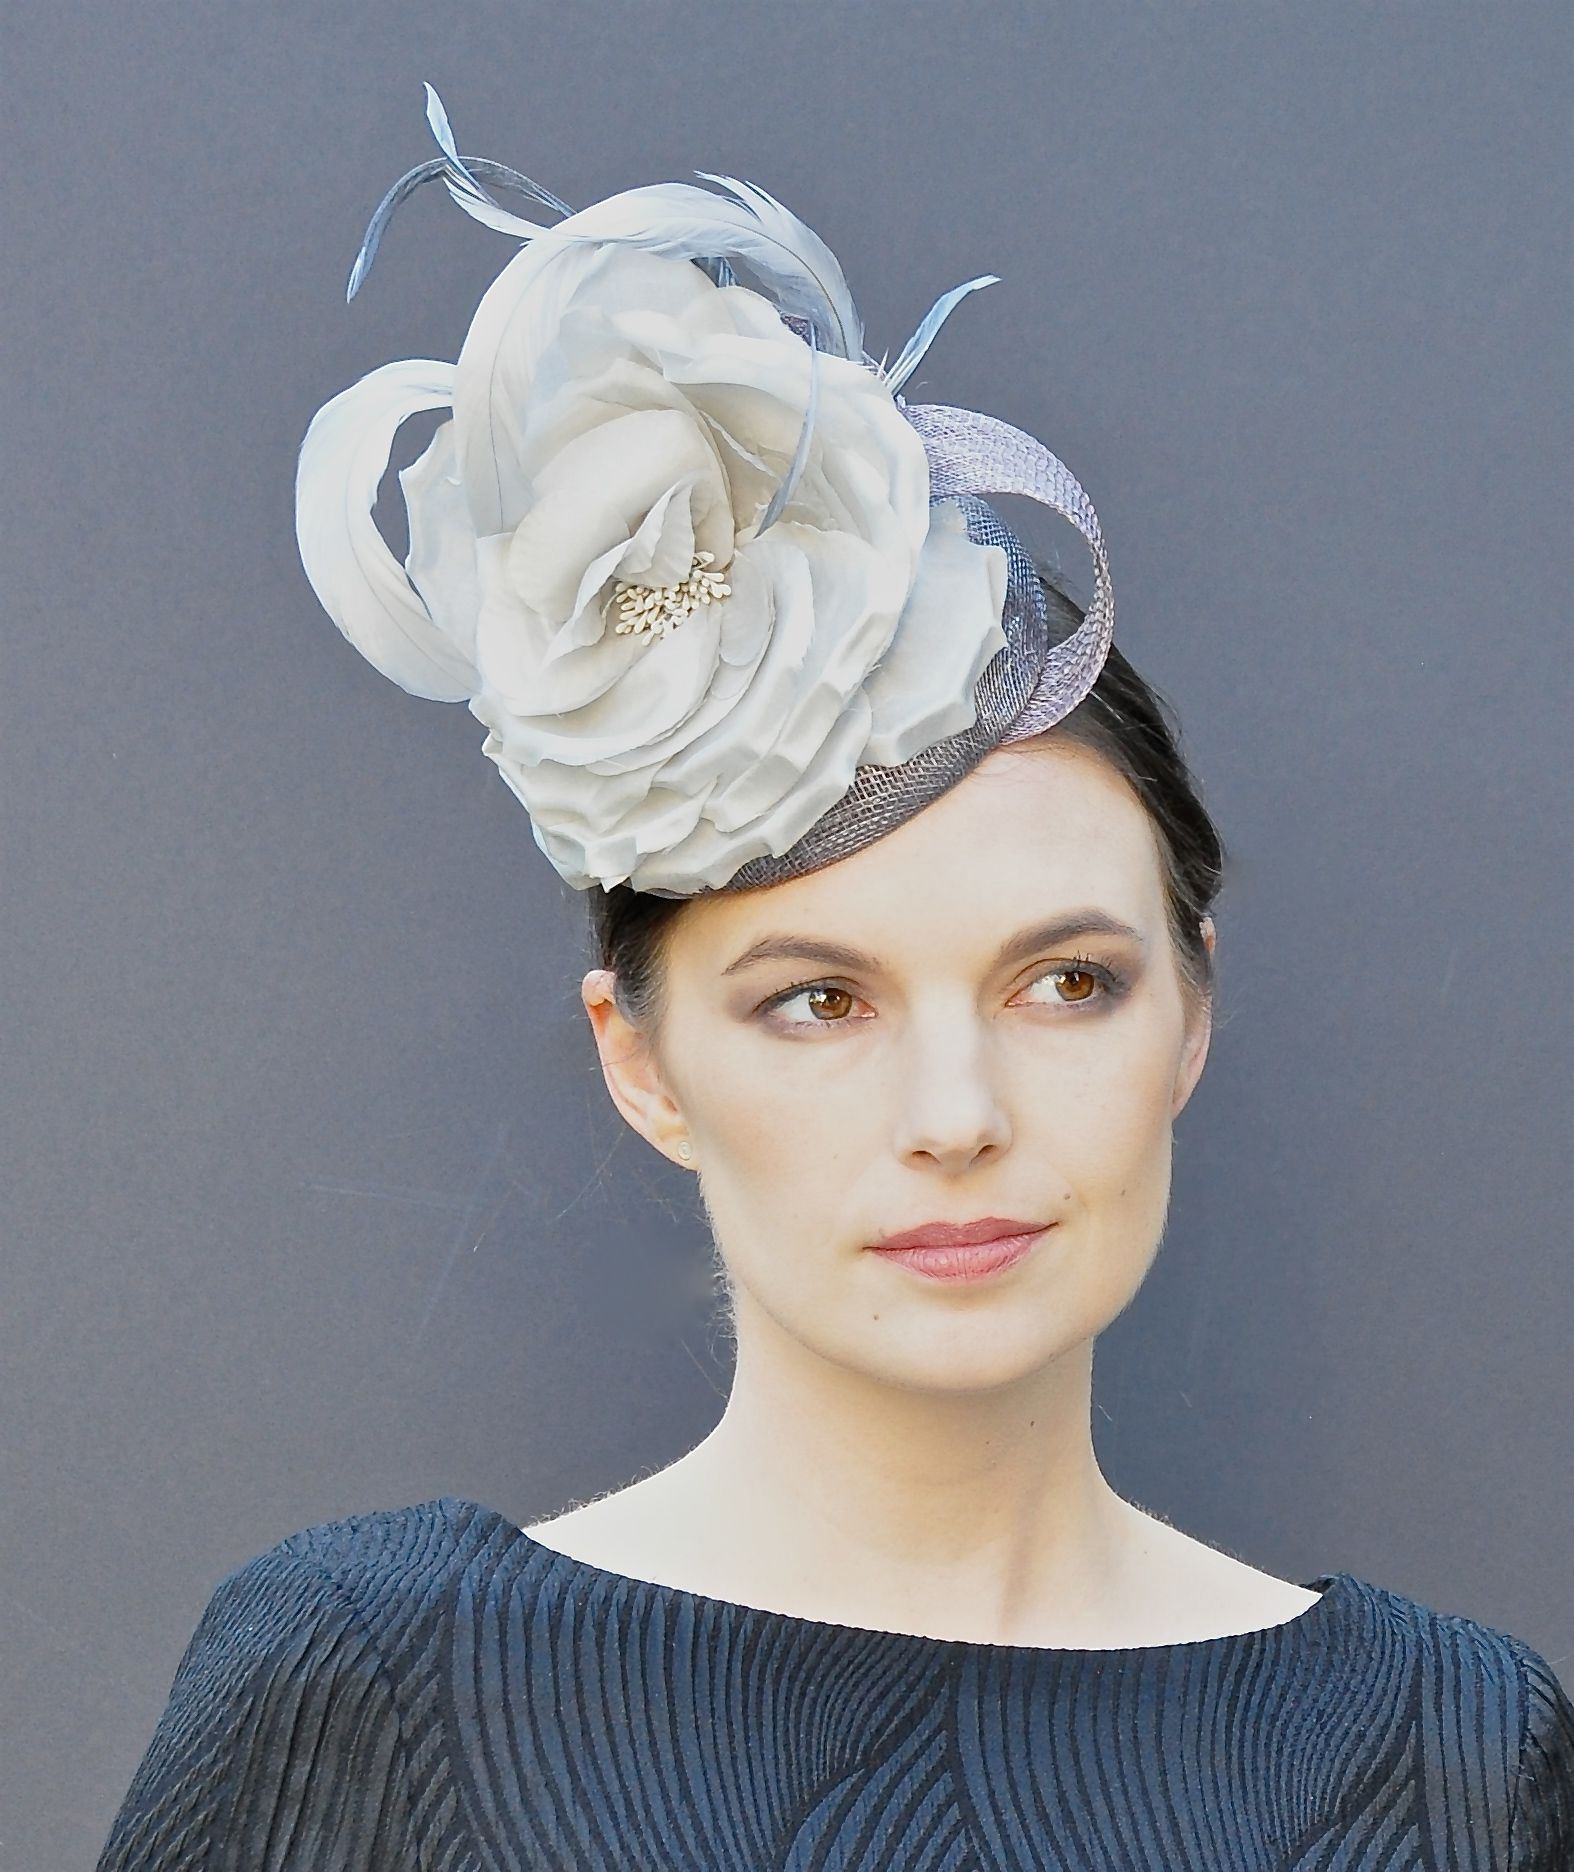 ed74ef27d48ef Handmade in my millinery studio in the Hollywood Hills. Available at   AwardMillineryDesign.com